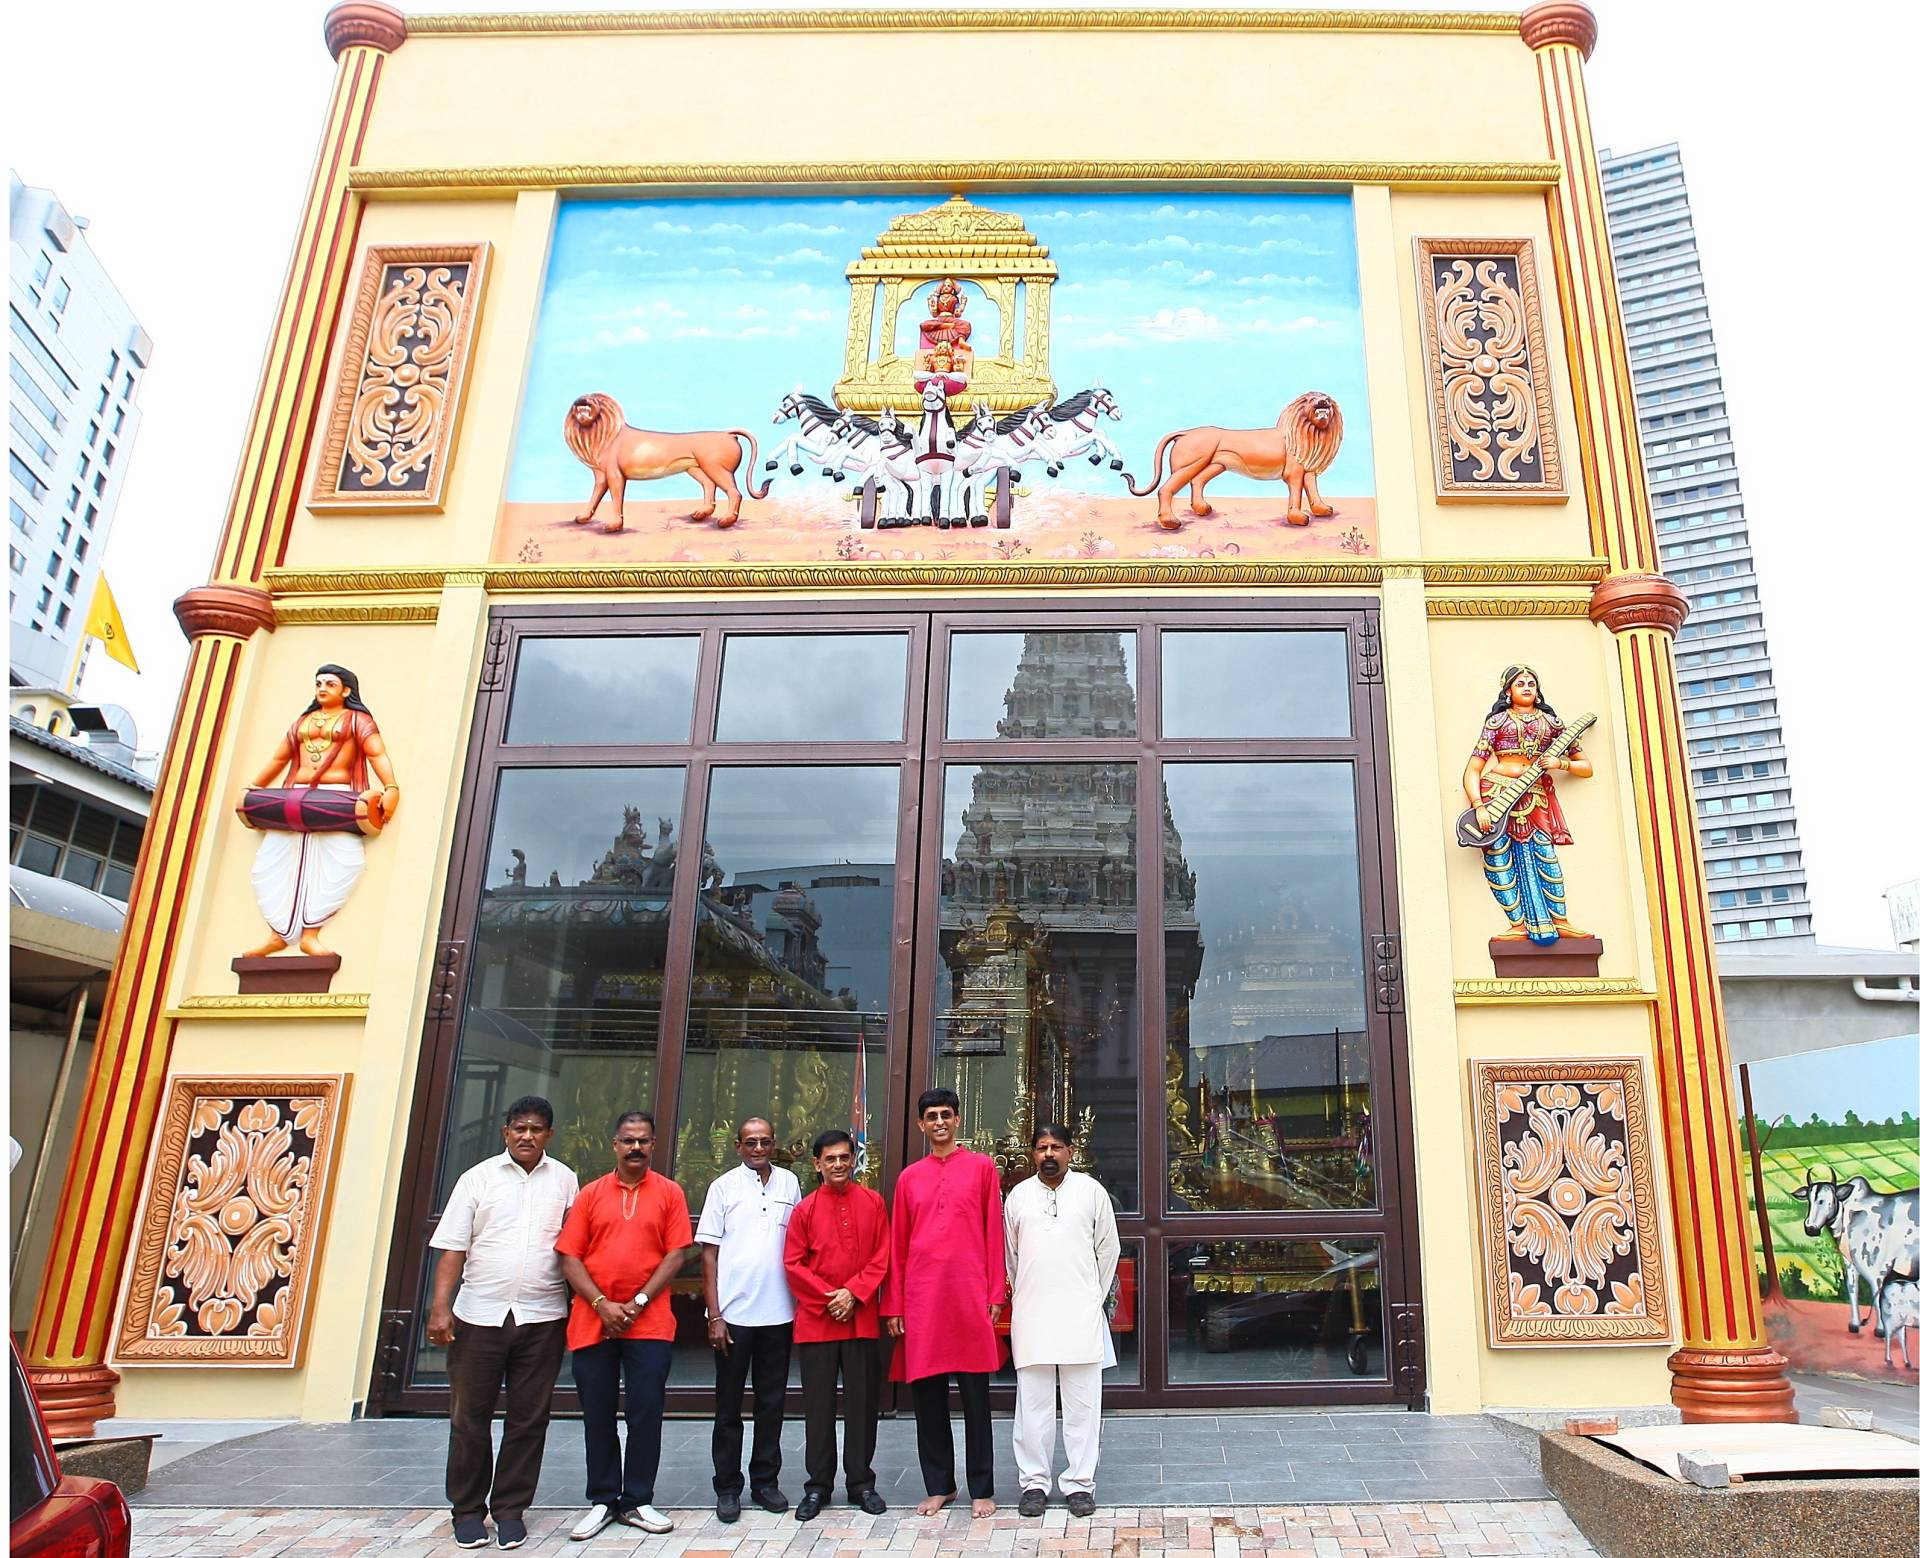 Heritage centre to promote culture in Johor